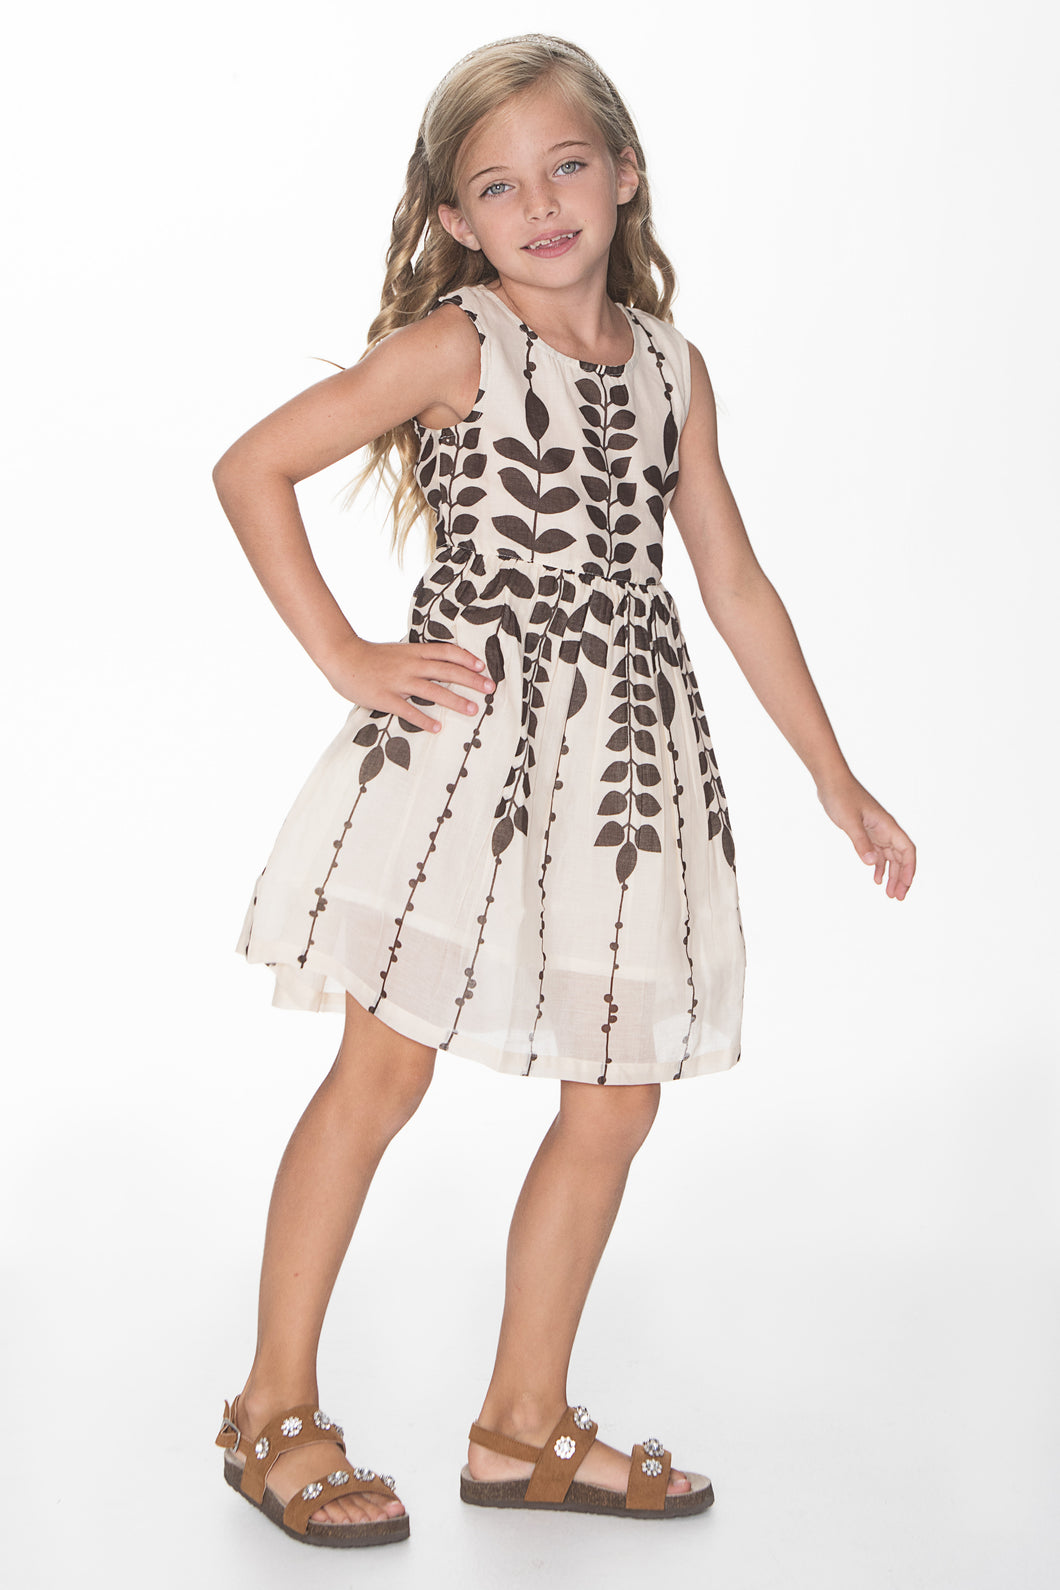 Off white and Brown Leaf Print Dress - Kids Wholesale Boutique Clothing, Dress - Girls Dresses, Yo Baby Wholesale - Yo Baby